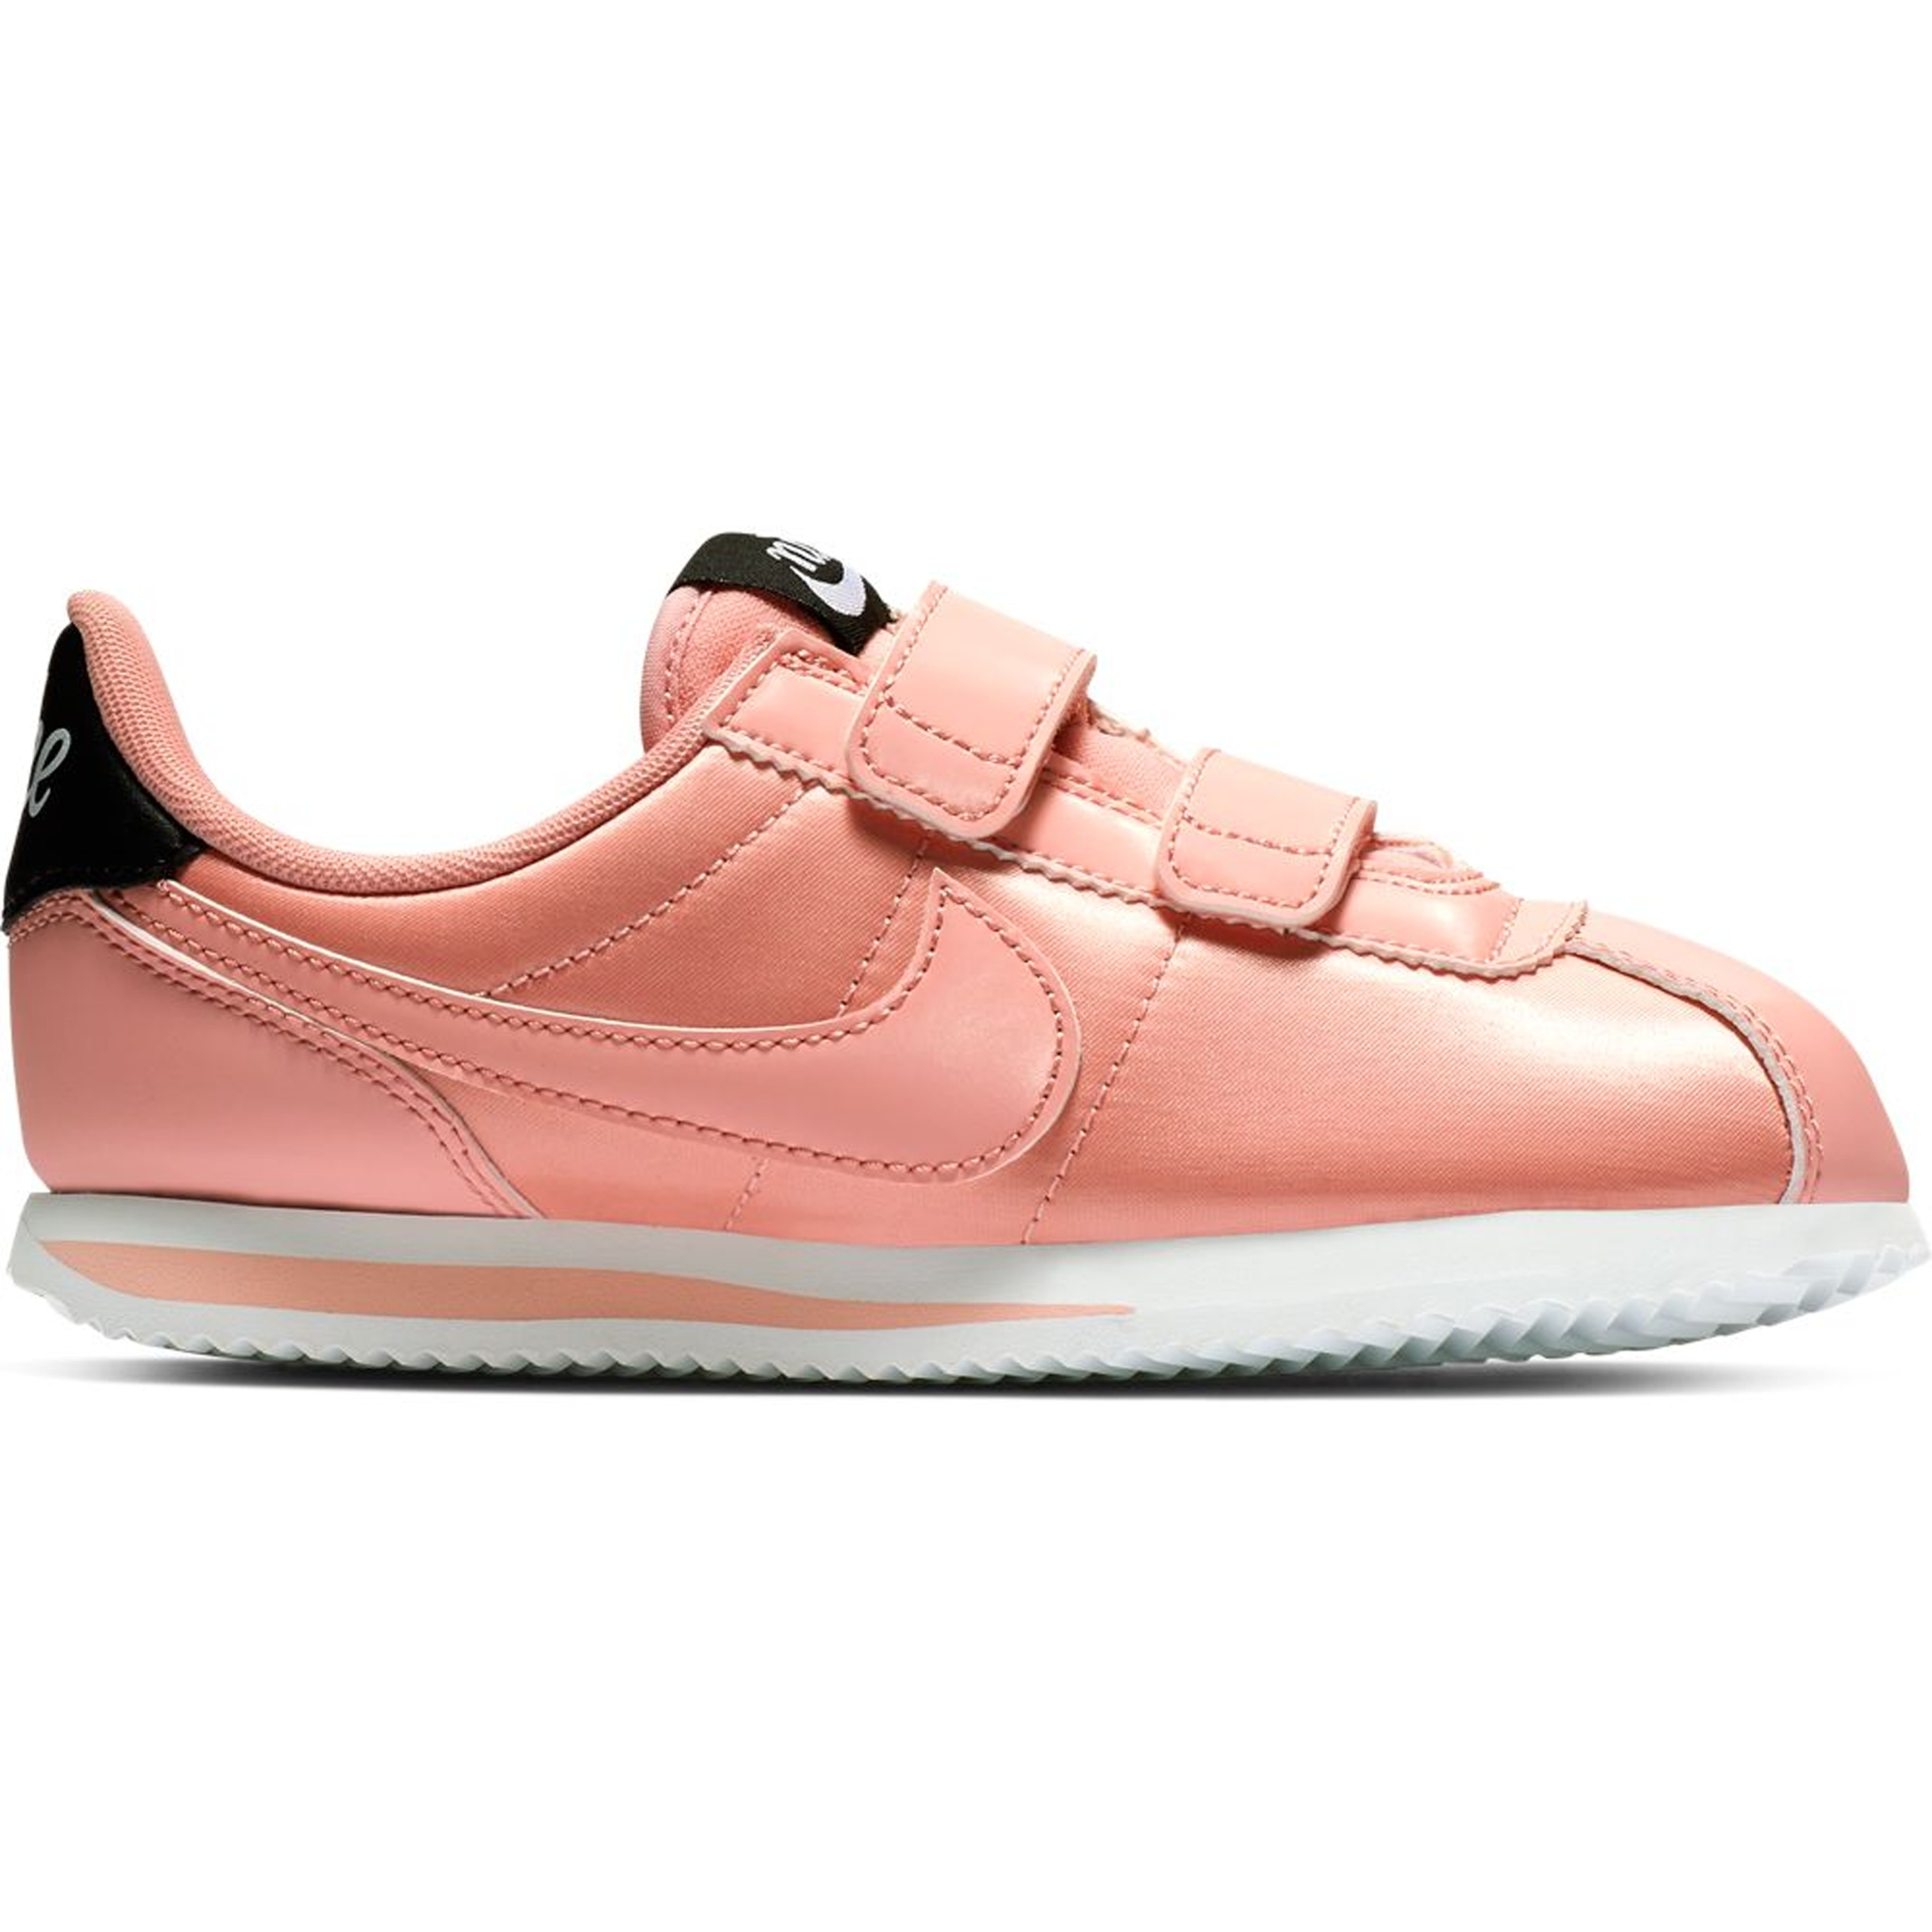 Nike Cortez Basic Valentines Day 2019 Bleached Coral (PS) (BQ7099-600)